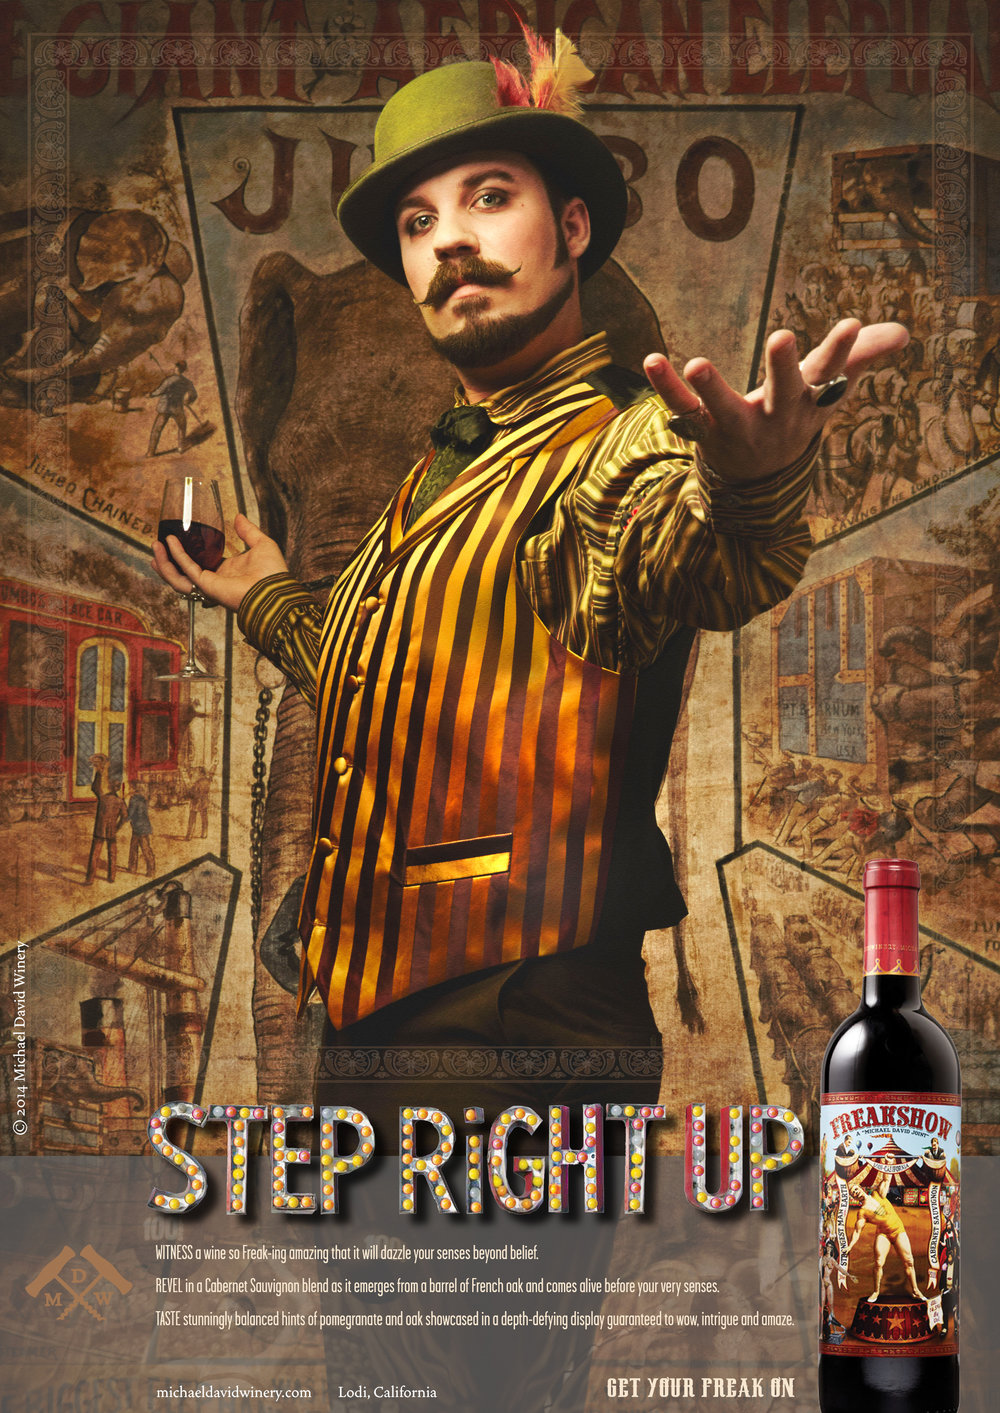 "STEP RIGHT UP - There's a new way to get your freak on. To introduce the brand to the American public, the campaign ran in Wine Spectator and Wine Enthusiast magazines, in-store displays, social and as digital media. THE CONCEPTWe see an image of a sideshow talker inviting the audience into the tent barking the classic, 'step right up!' The photo was shot in rich, vintage colors of a real circus barker with hypnotic appeal. This created immediate event excitement and directly tells the consumer something amazing lurks within.THE RESULTSFreakshow Cab was awarded Impacts' ""Rising Star"" award in 2016. Freakshow expanded to its production from fewer than 10,000 cases to more than 100,000 after the campaign. They also introduced additional products and now are sold across the nation."